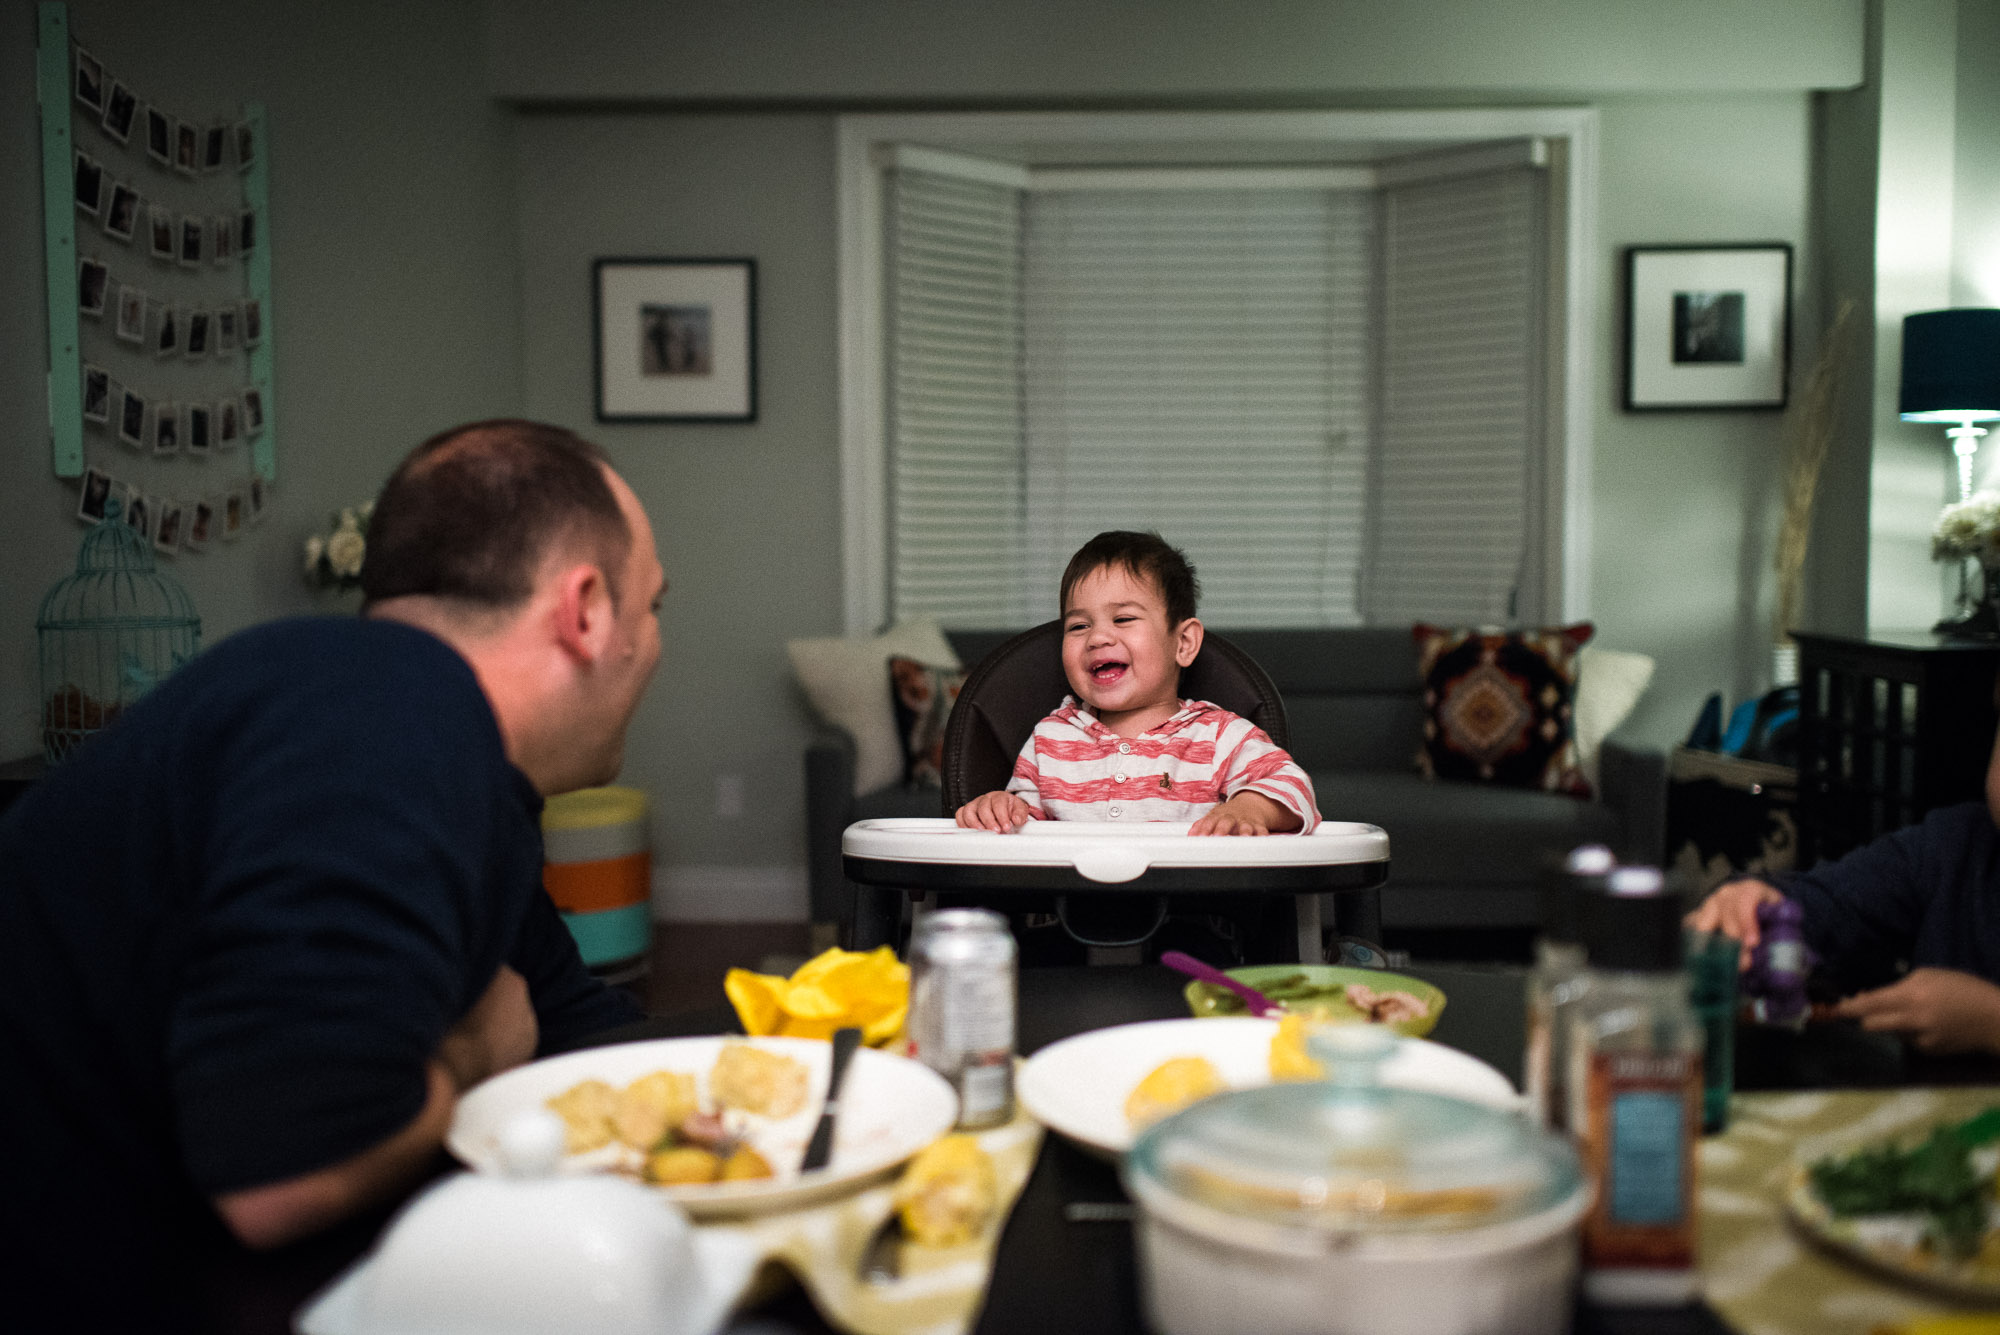 dad and toddler exchange smiles at dinnertable